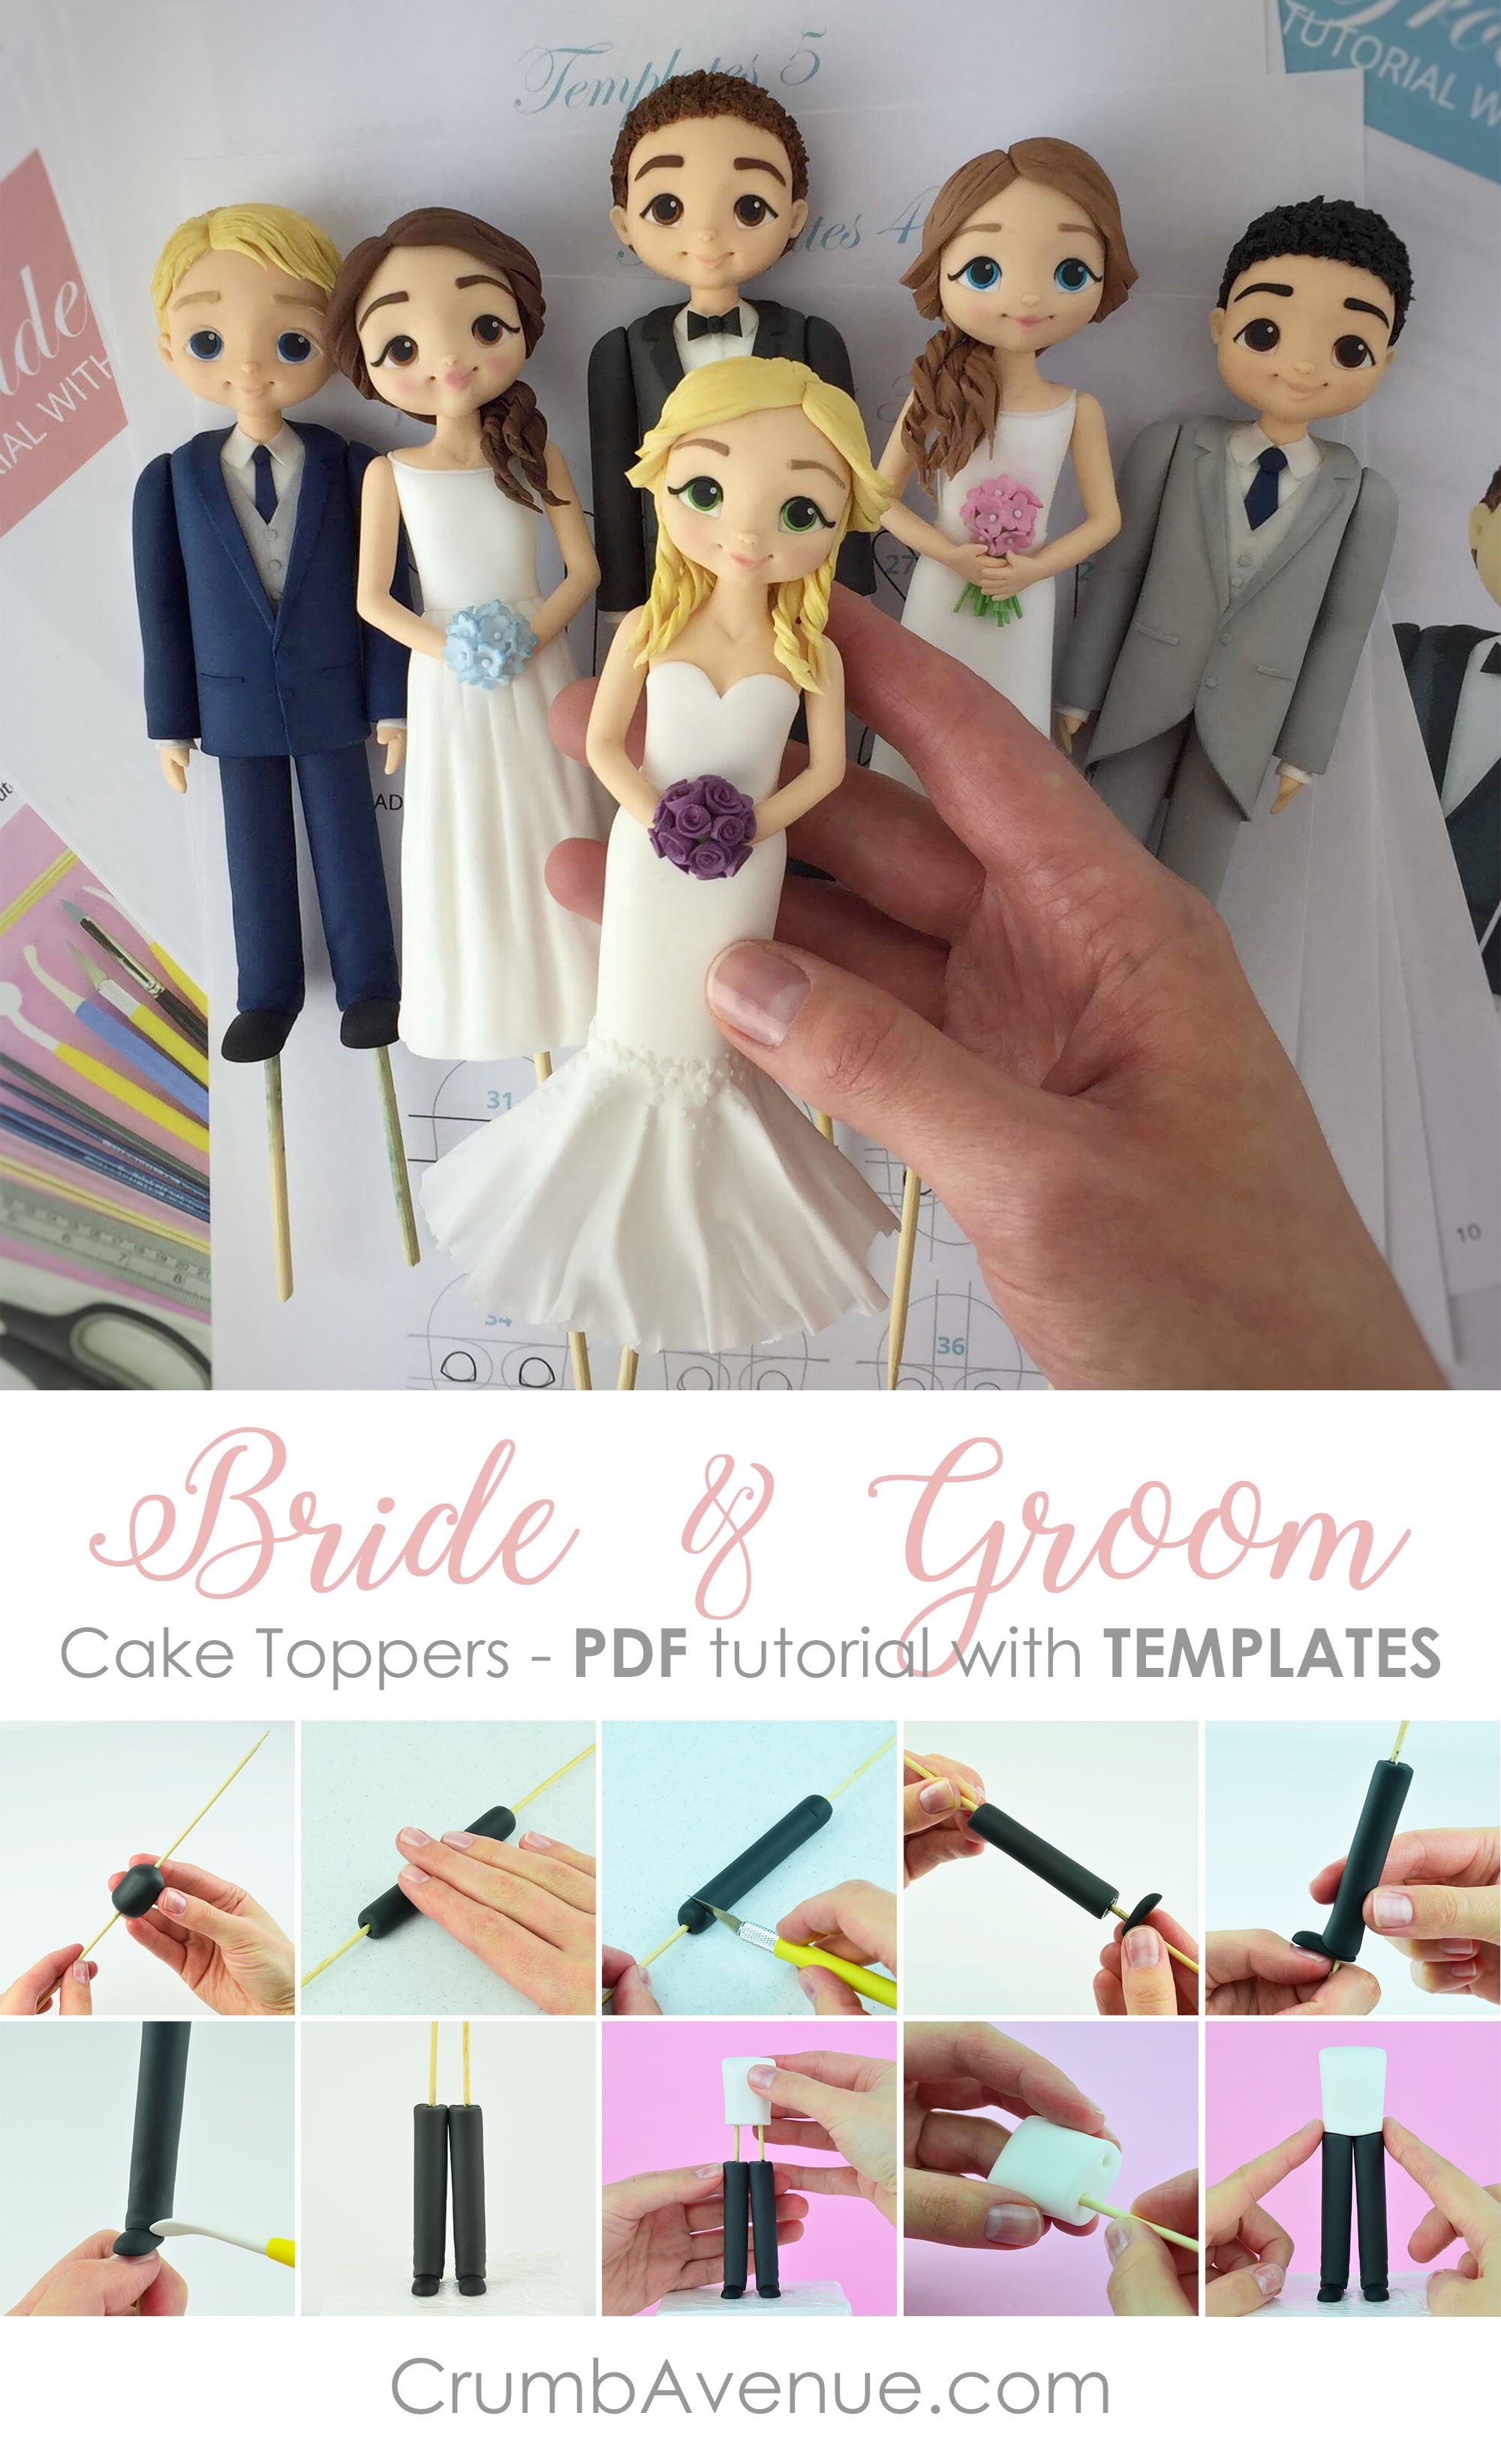 Cute Bride and Groom Cake Toppers - PDF TUTORIAL with TEMPLATES